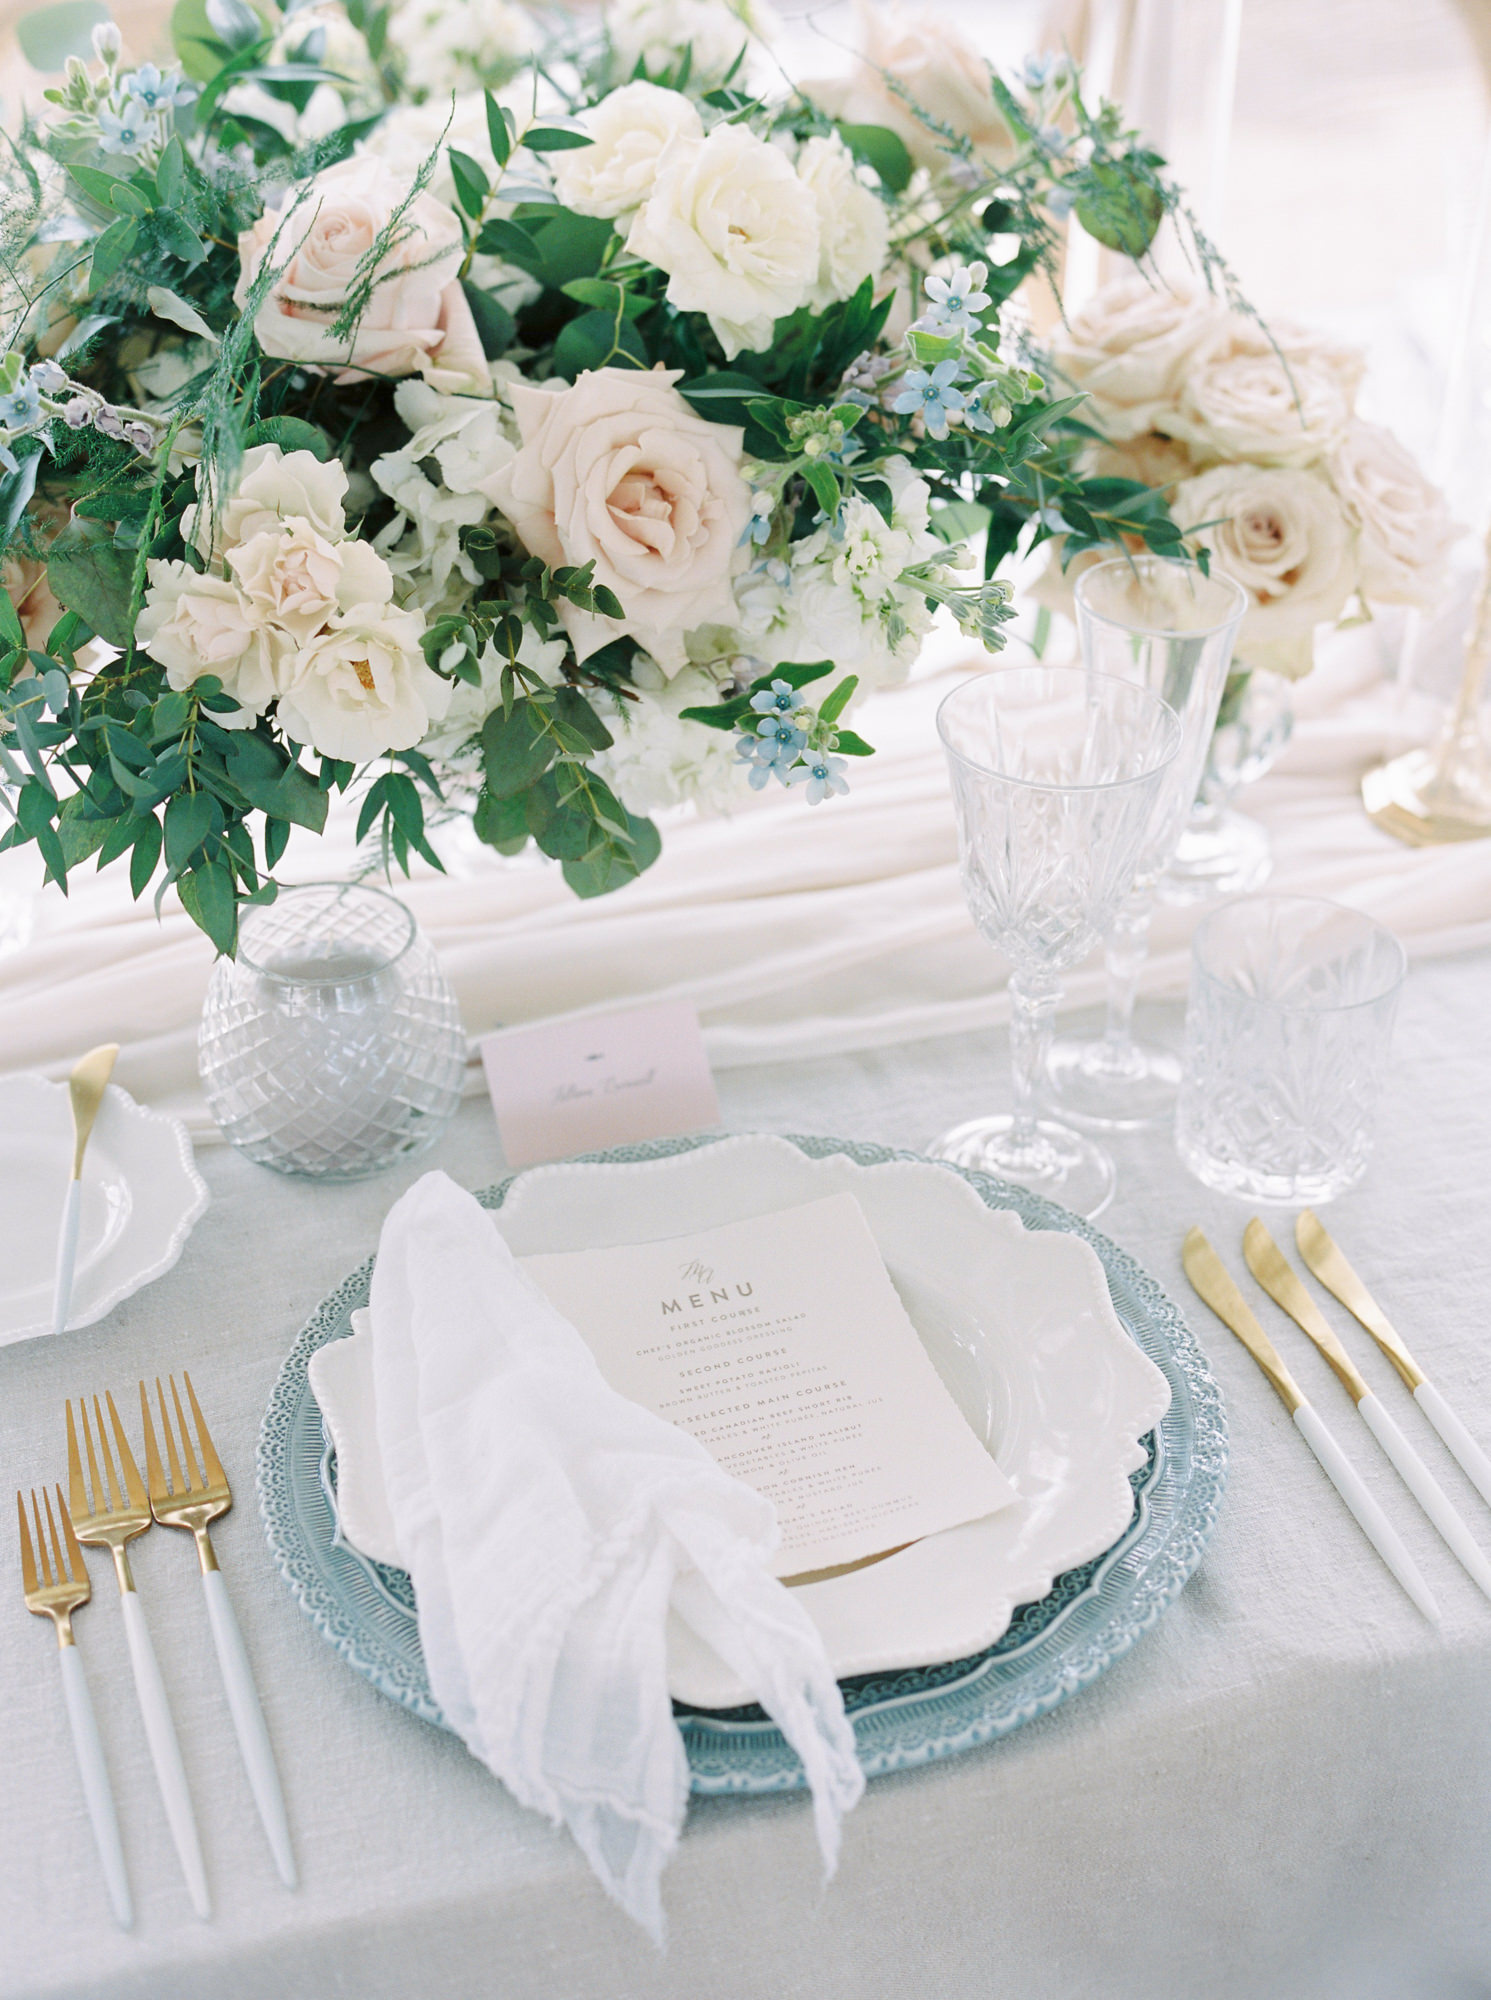 blue charger white plate placesetting with gold and white silverware and glass china